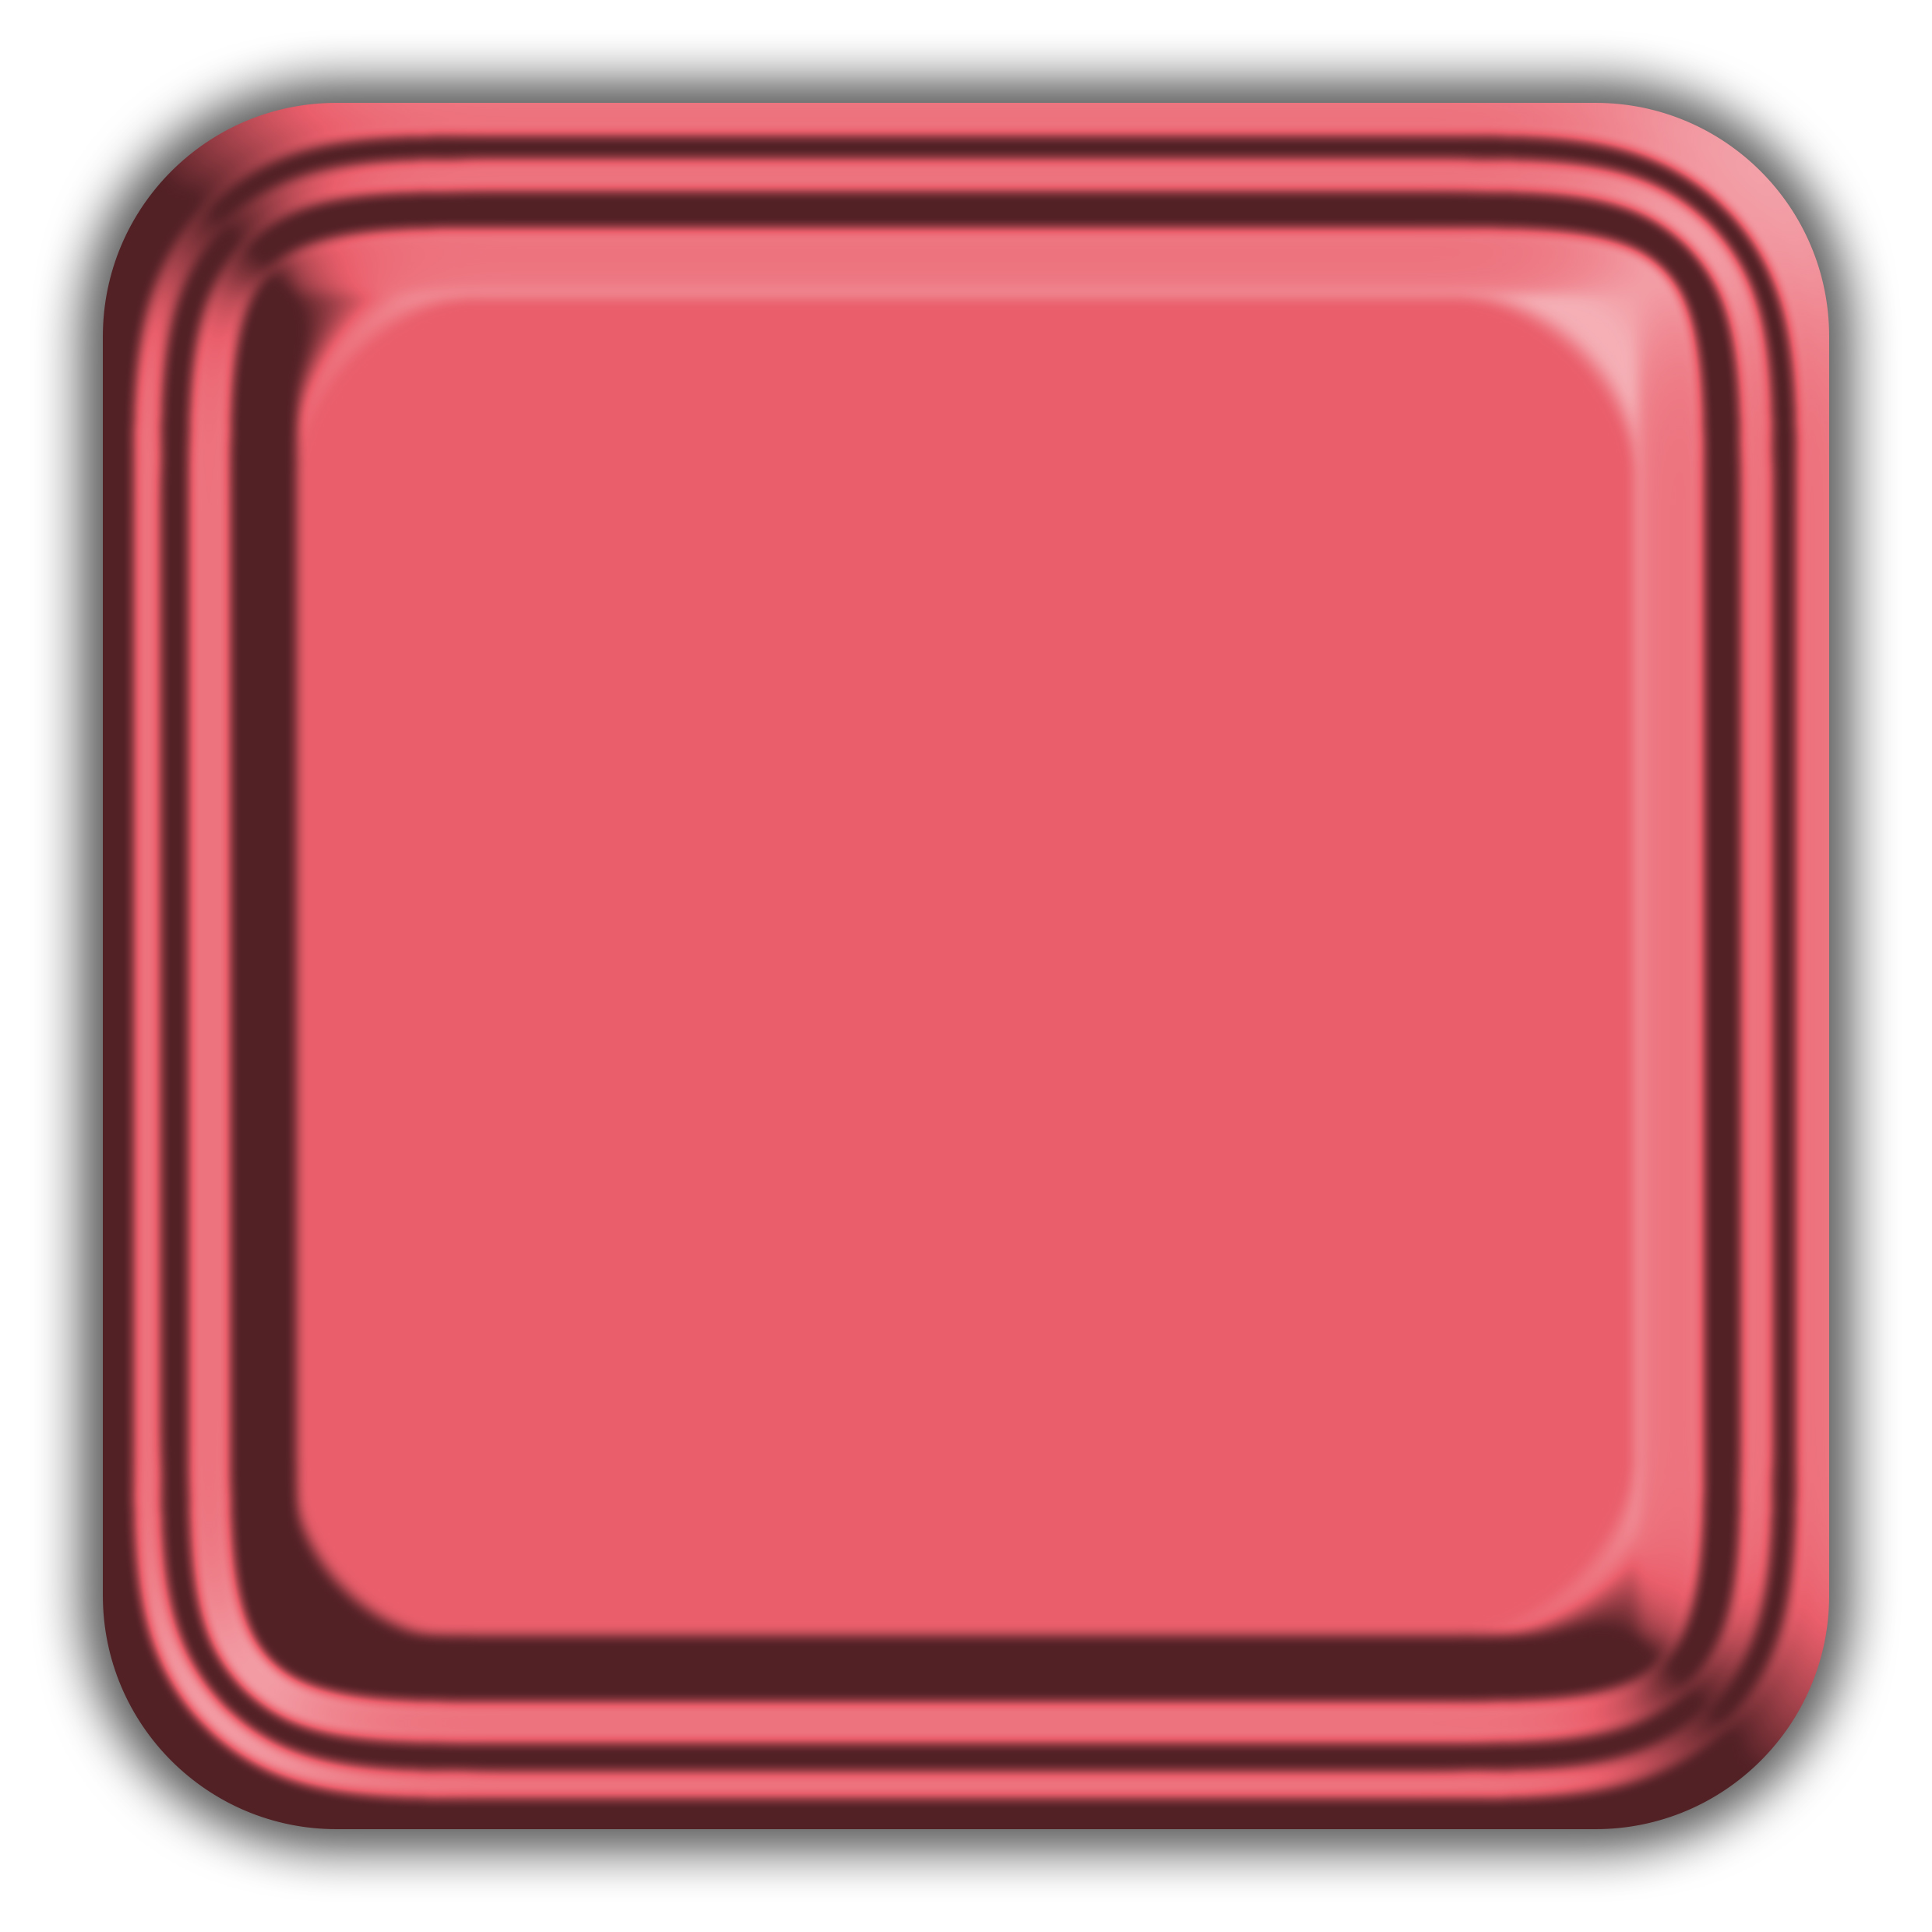 Stain #027 Salmon Pink